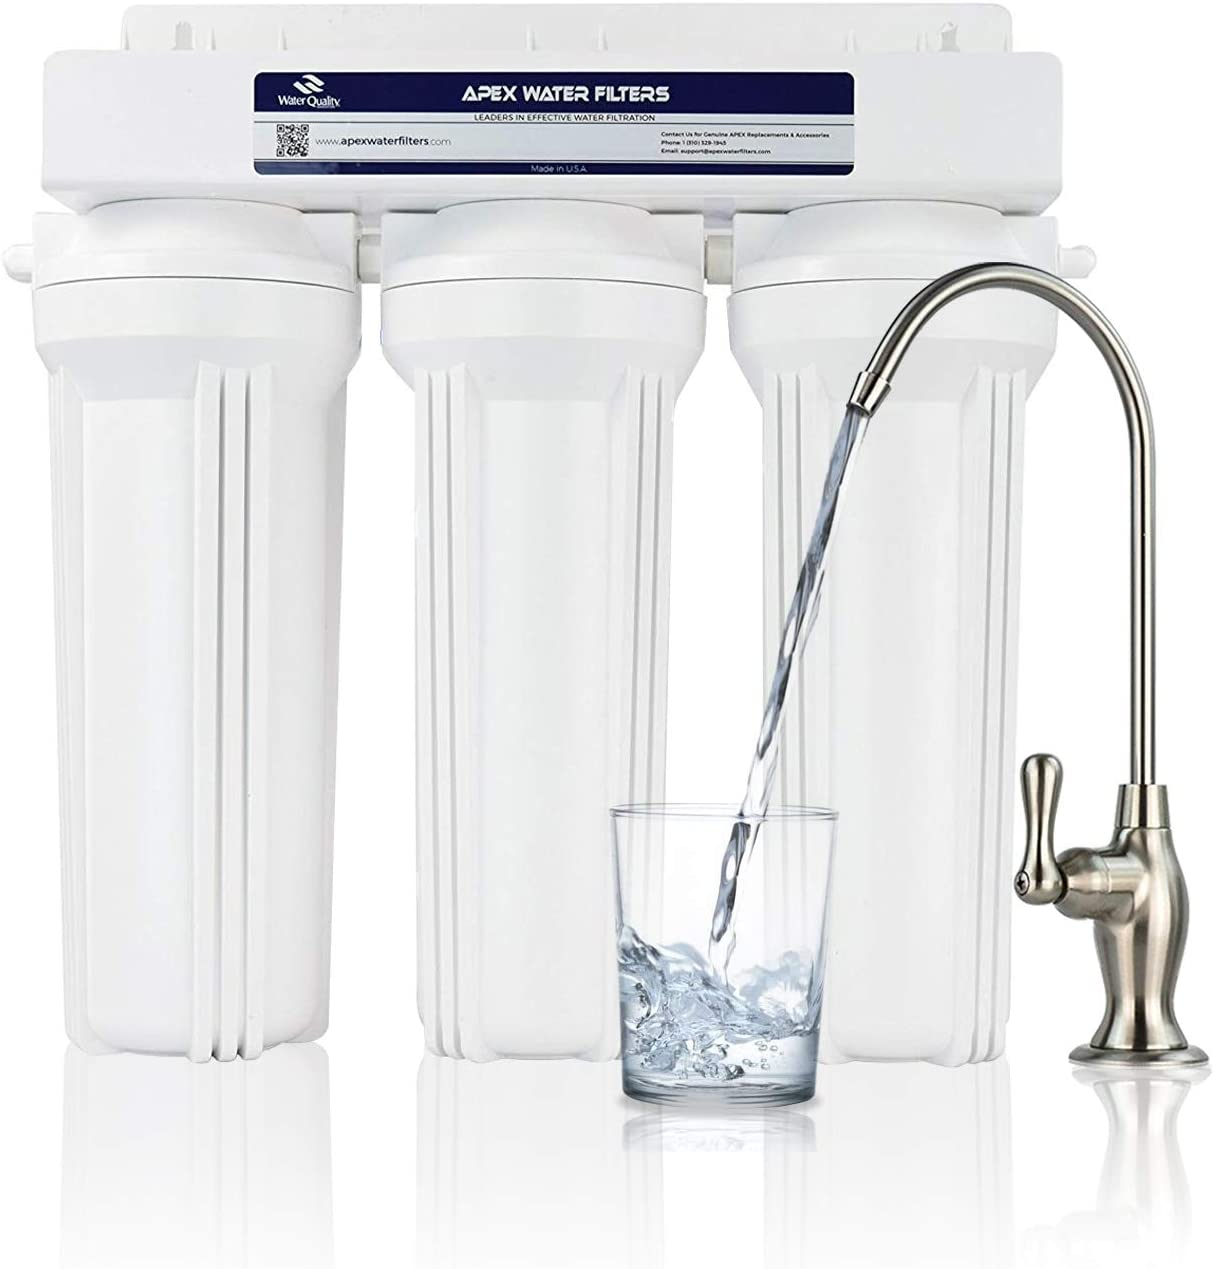 APEX MR-2031 Under the Counter Water Filter System - Lead Removal